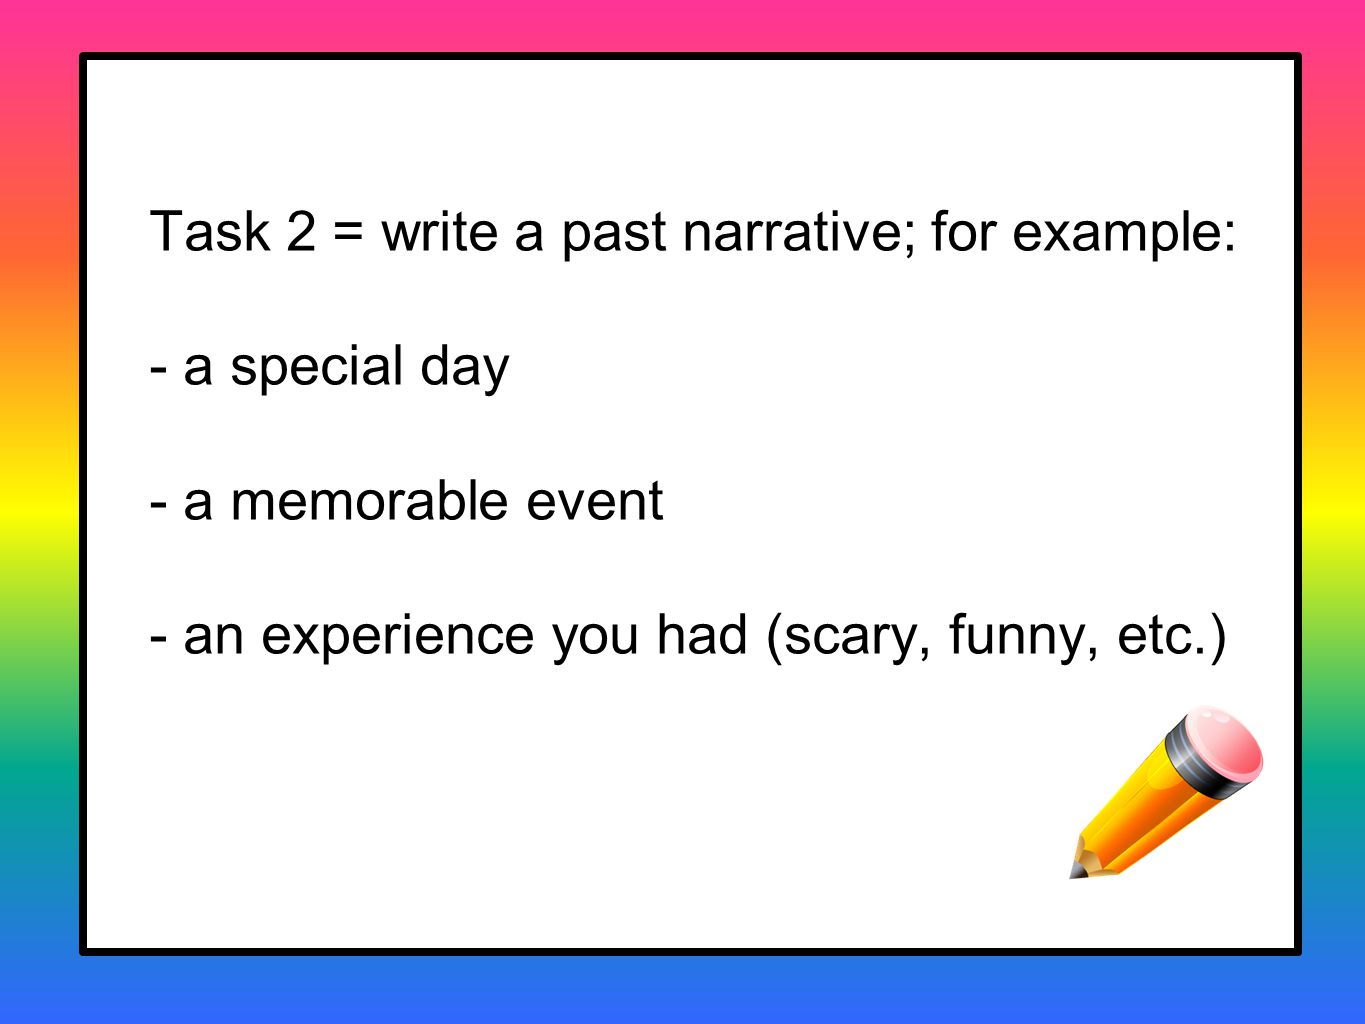 Task 2 = write a past narrative; for example: - a special day - a memorable event - an experience you had (scary, funny, etc.)